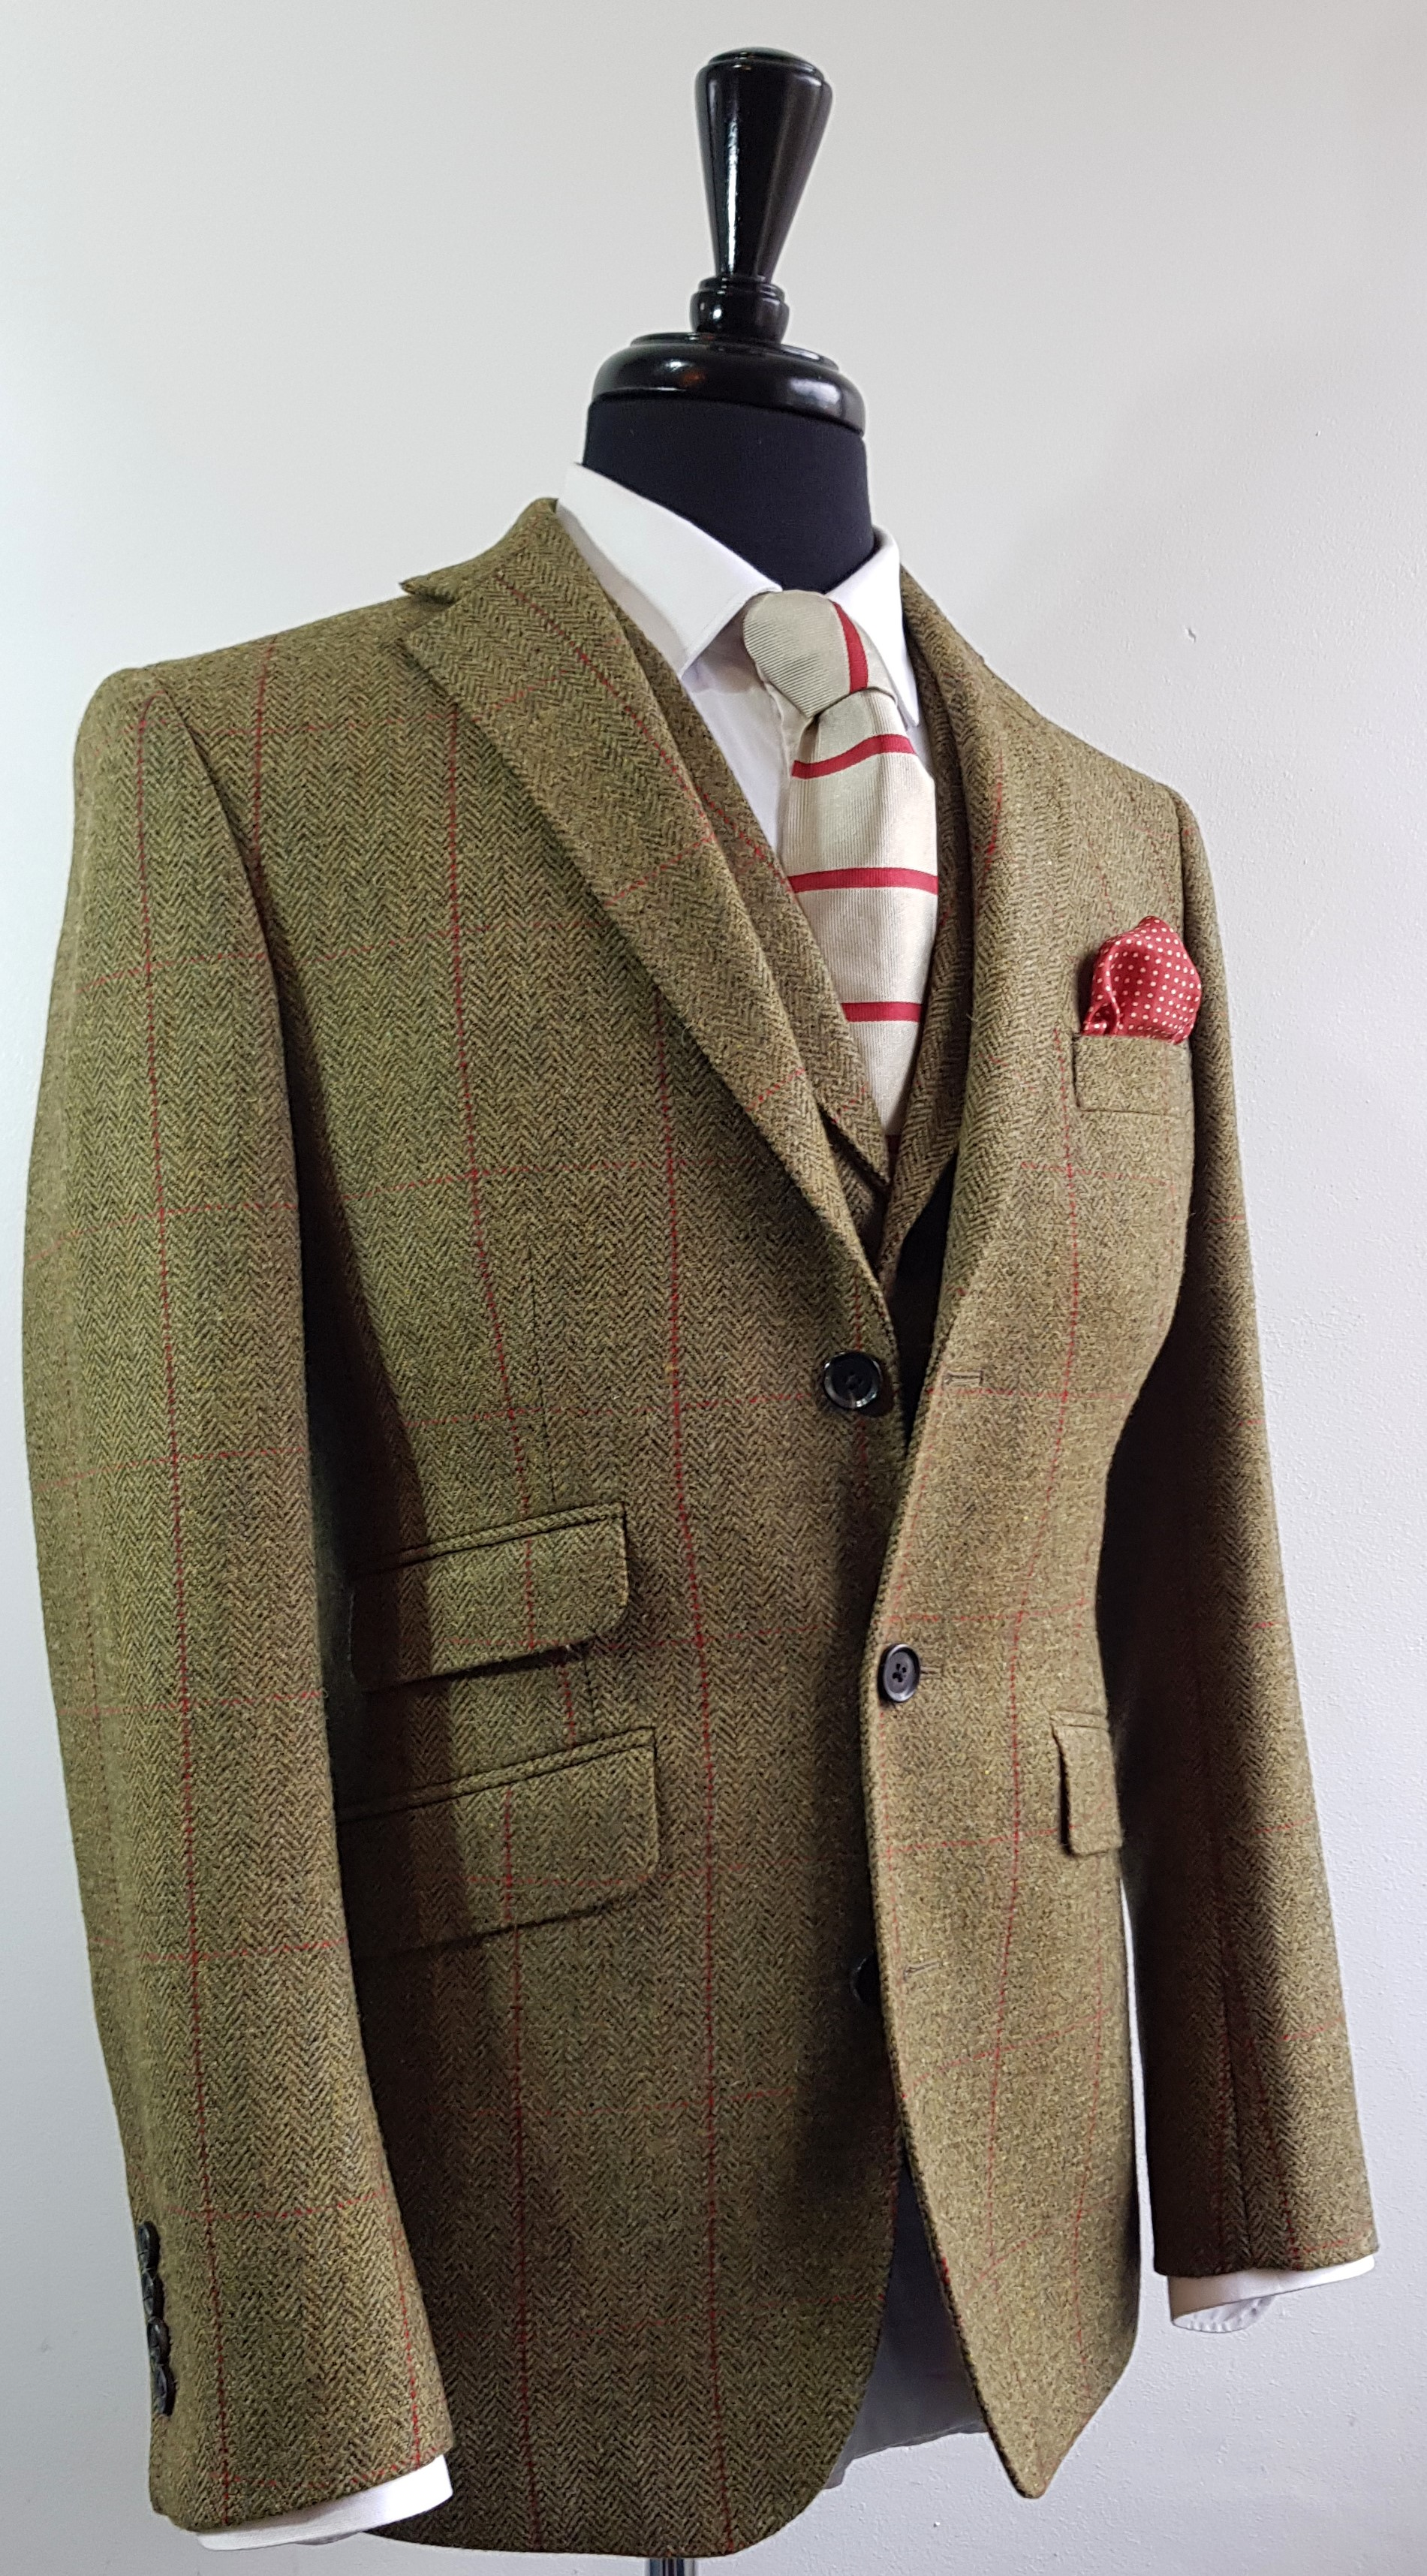 Tweed Jacket and Tweed Waistcoat (10).jpg